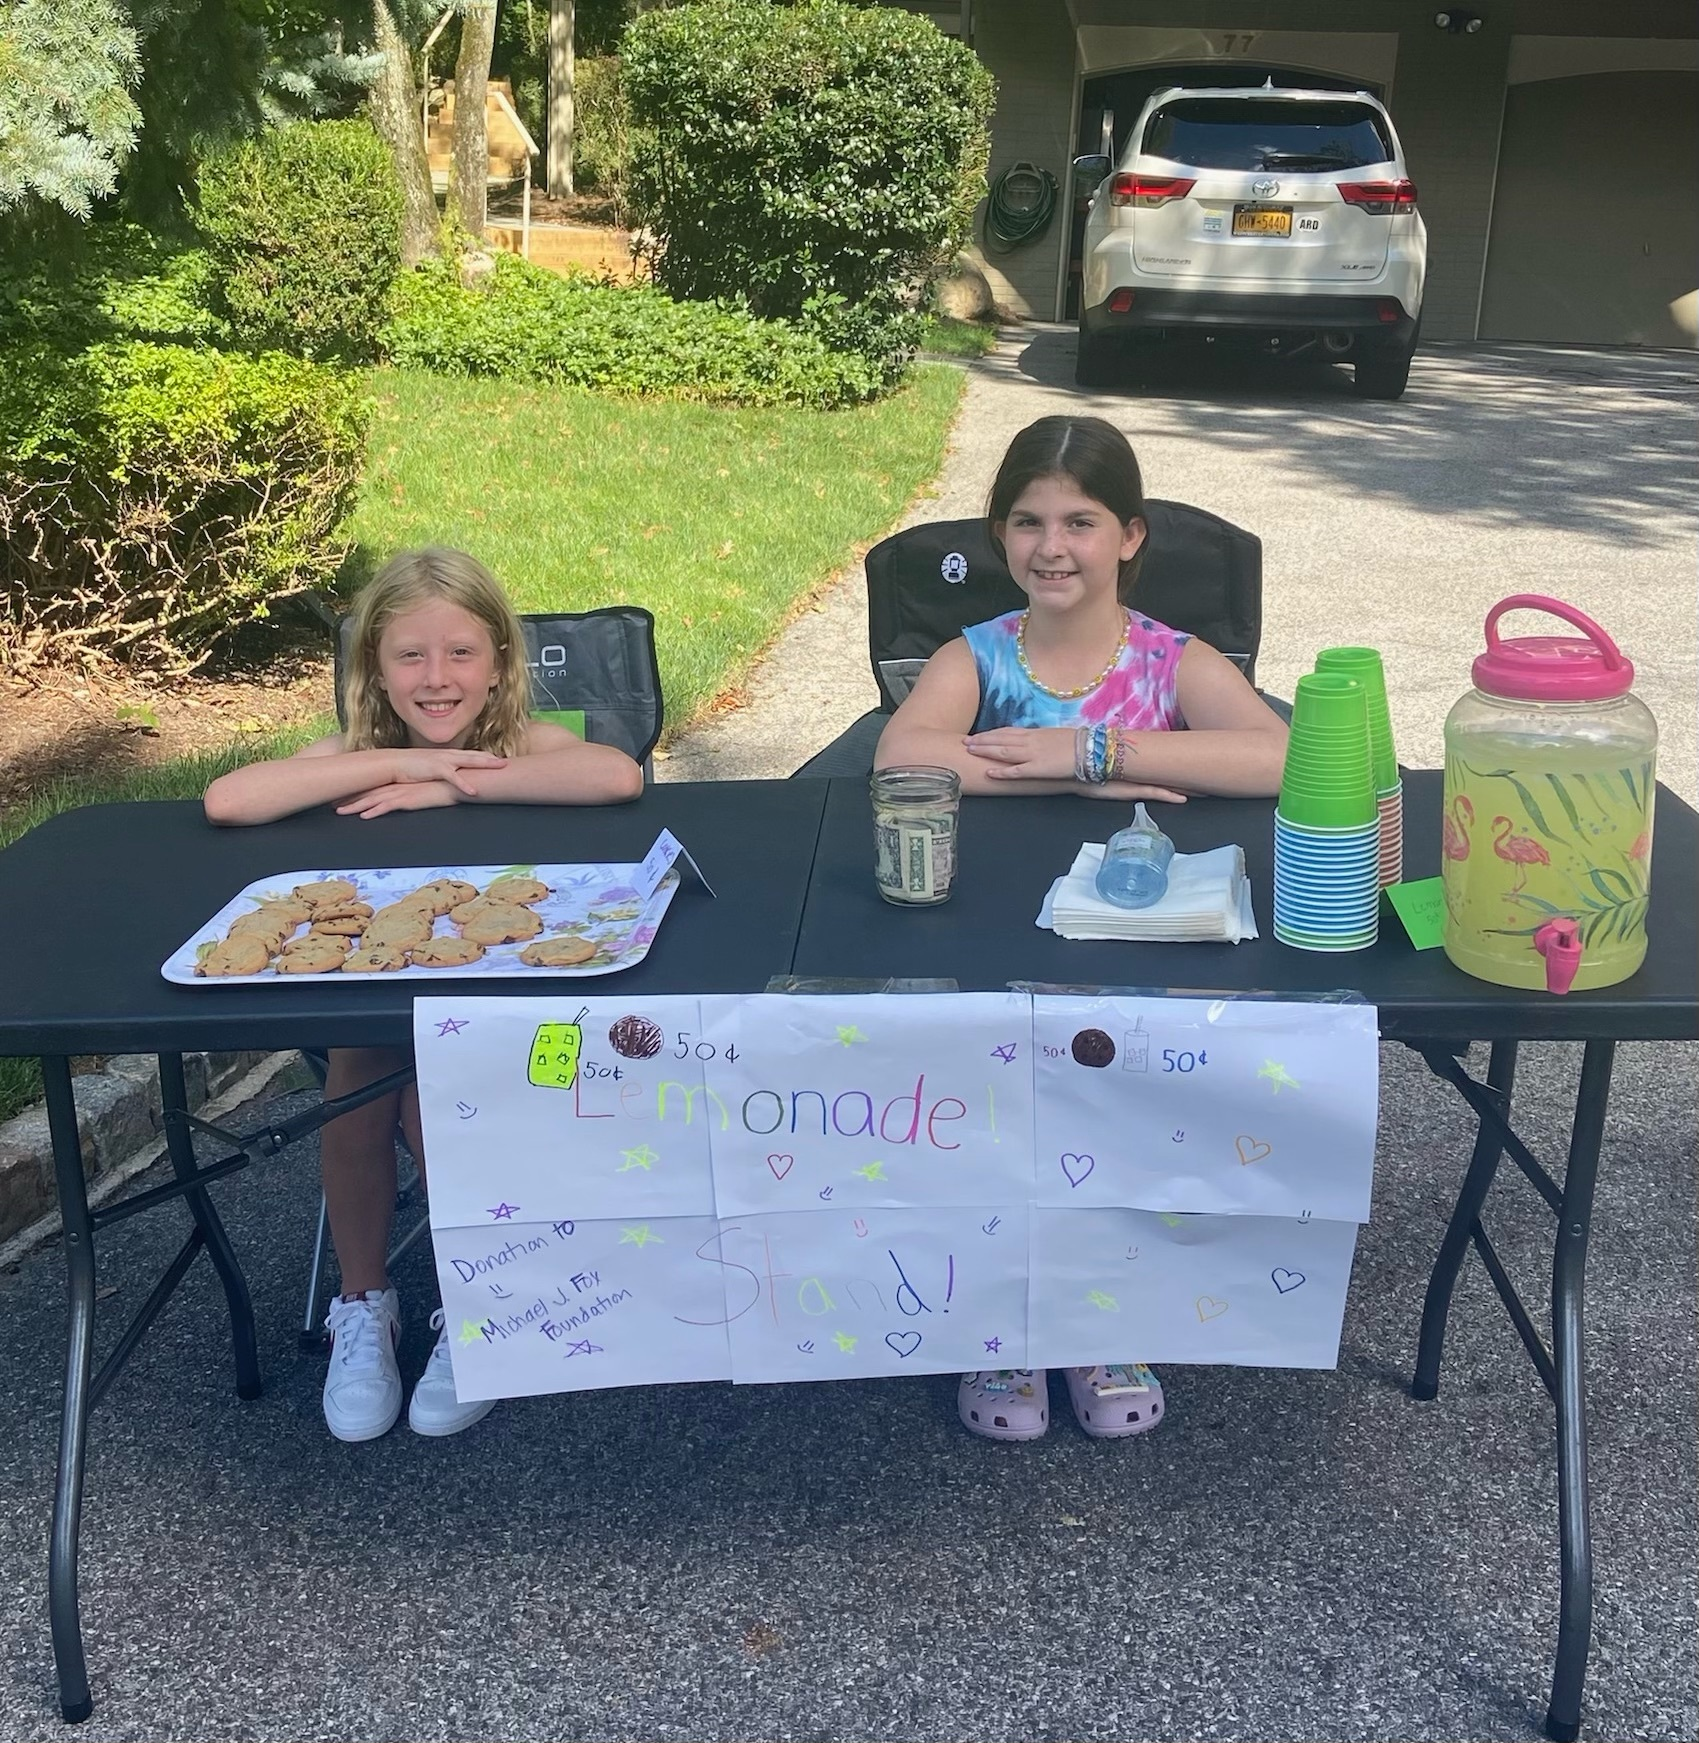 Bret Parker's niece Addison Himelstein and friend Ava Brodie were raising money recently for the Michael J. Fox Foundation.